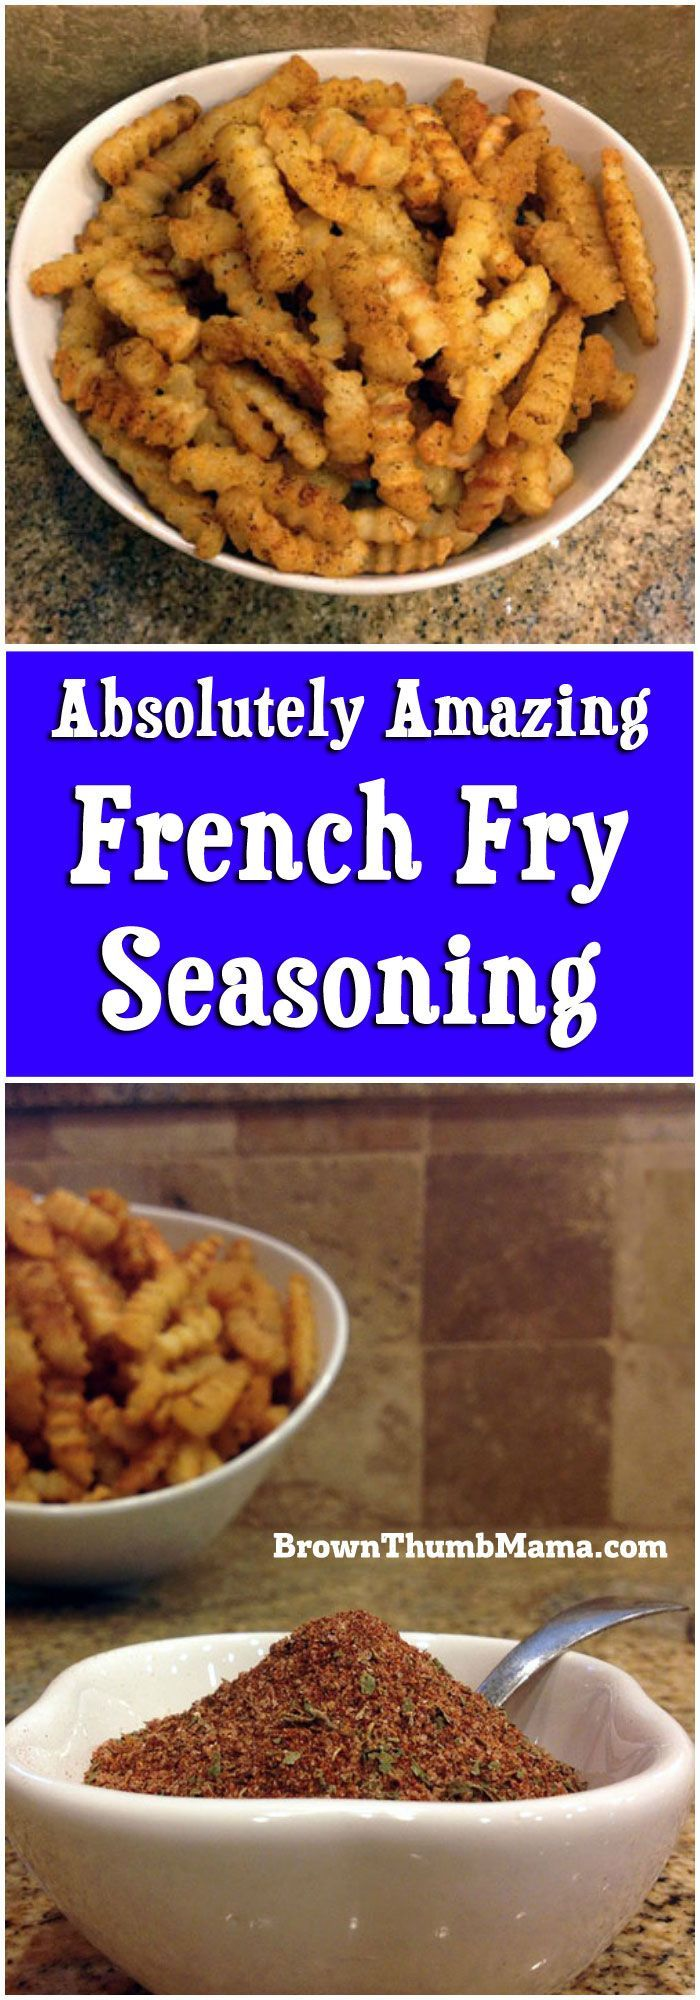 Nobody likes bland, soggy fries! Learn how to kick up the #flavor and the crunch on your #baked french fries with this amazing #seasoning blend. #frenchfries